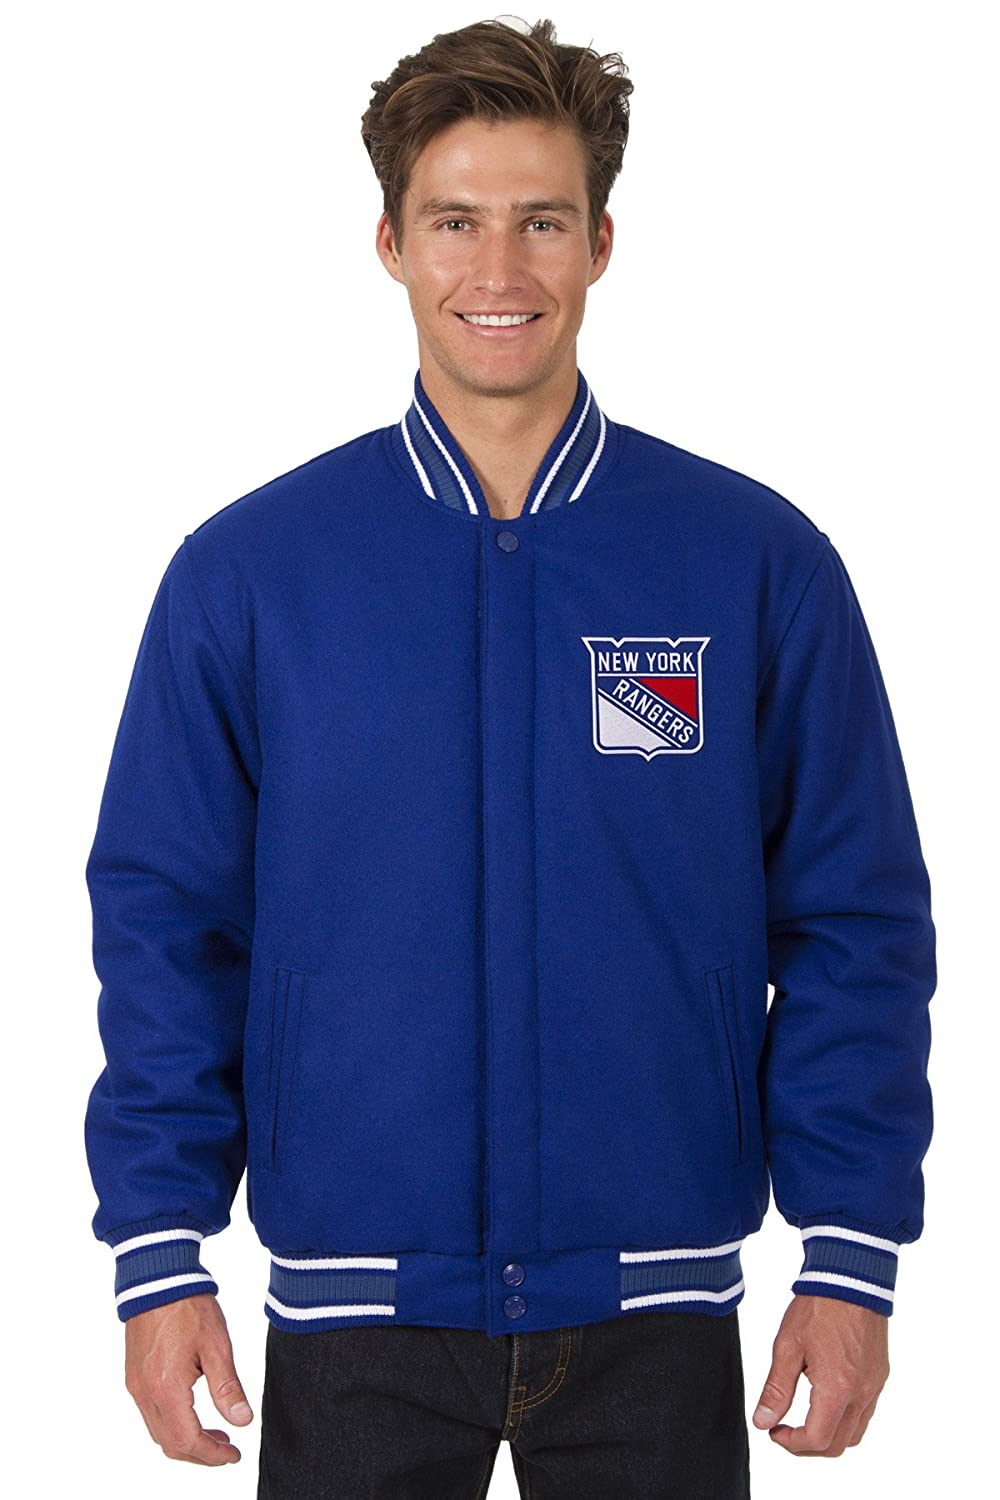 Discount New York Rangers Hockey Jacket Wool Nylon Royal Blue Reversible Embroidered Logos